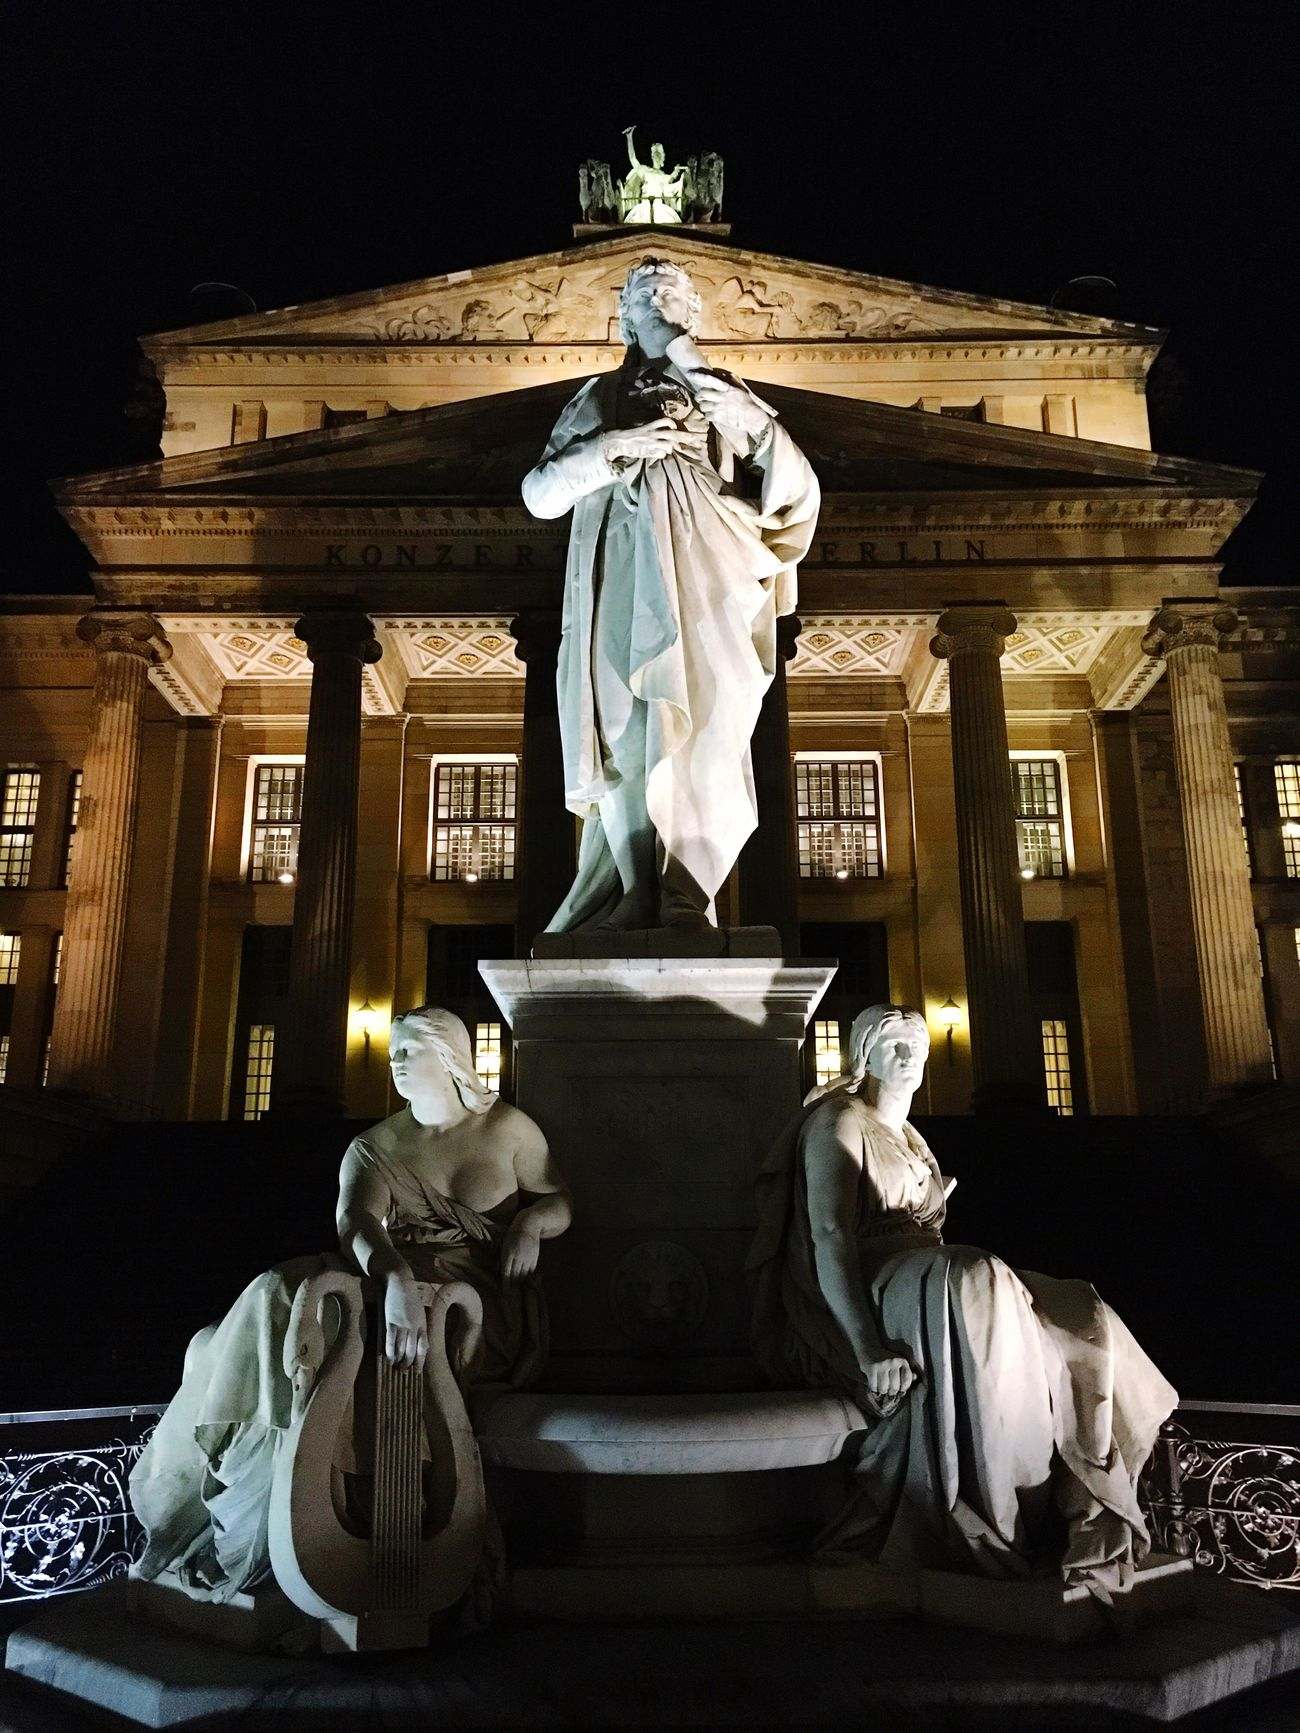 Schiller At Gendarmenmarkt Berlin Germany🇩🇪 Showcase: February Nacht Night Konzerthaus Schiller Statue Berlin By Night Berliner Ansichten Berlin Photography Iphone6 Berlin Mitte Famous Place IPhoneography